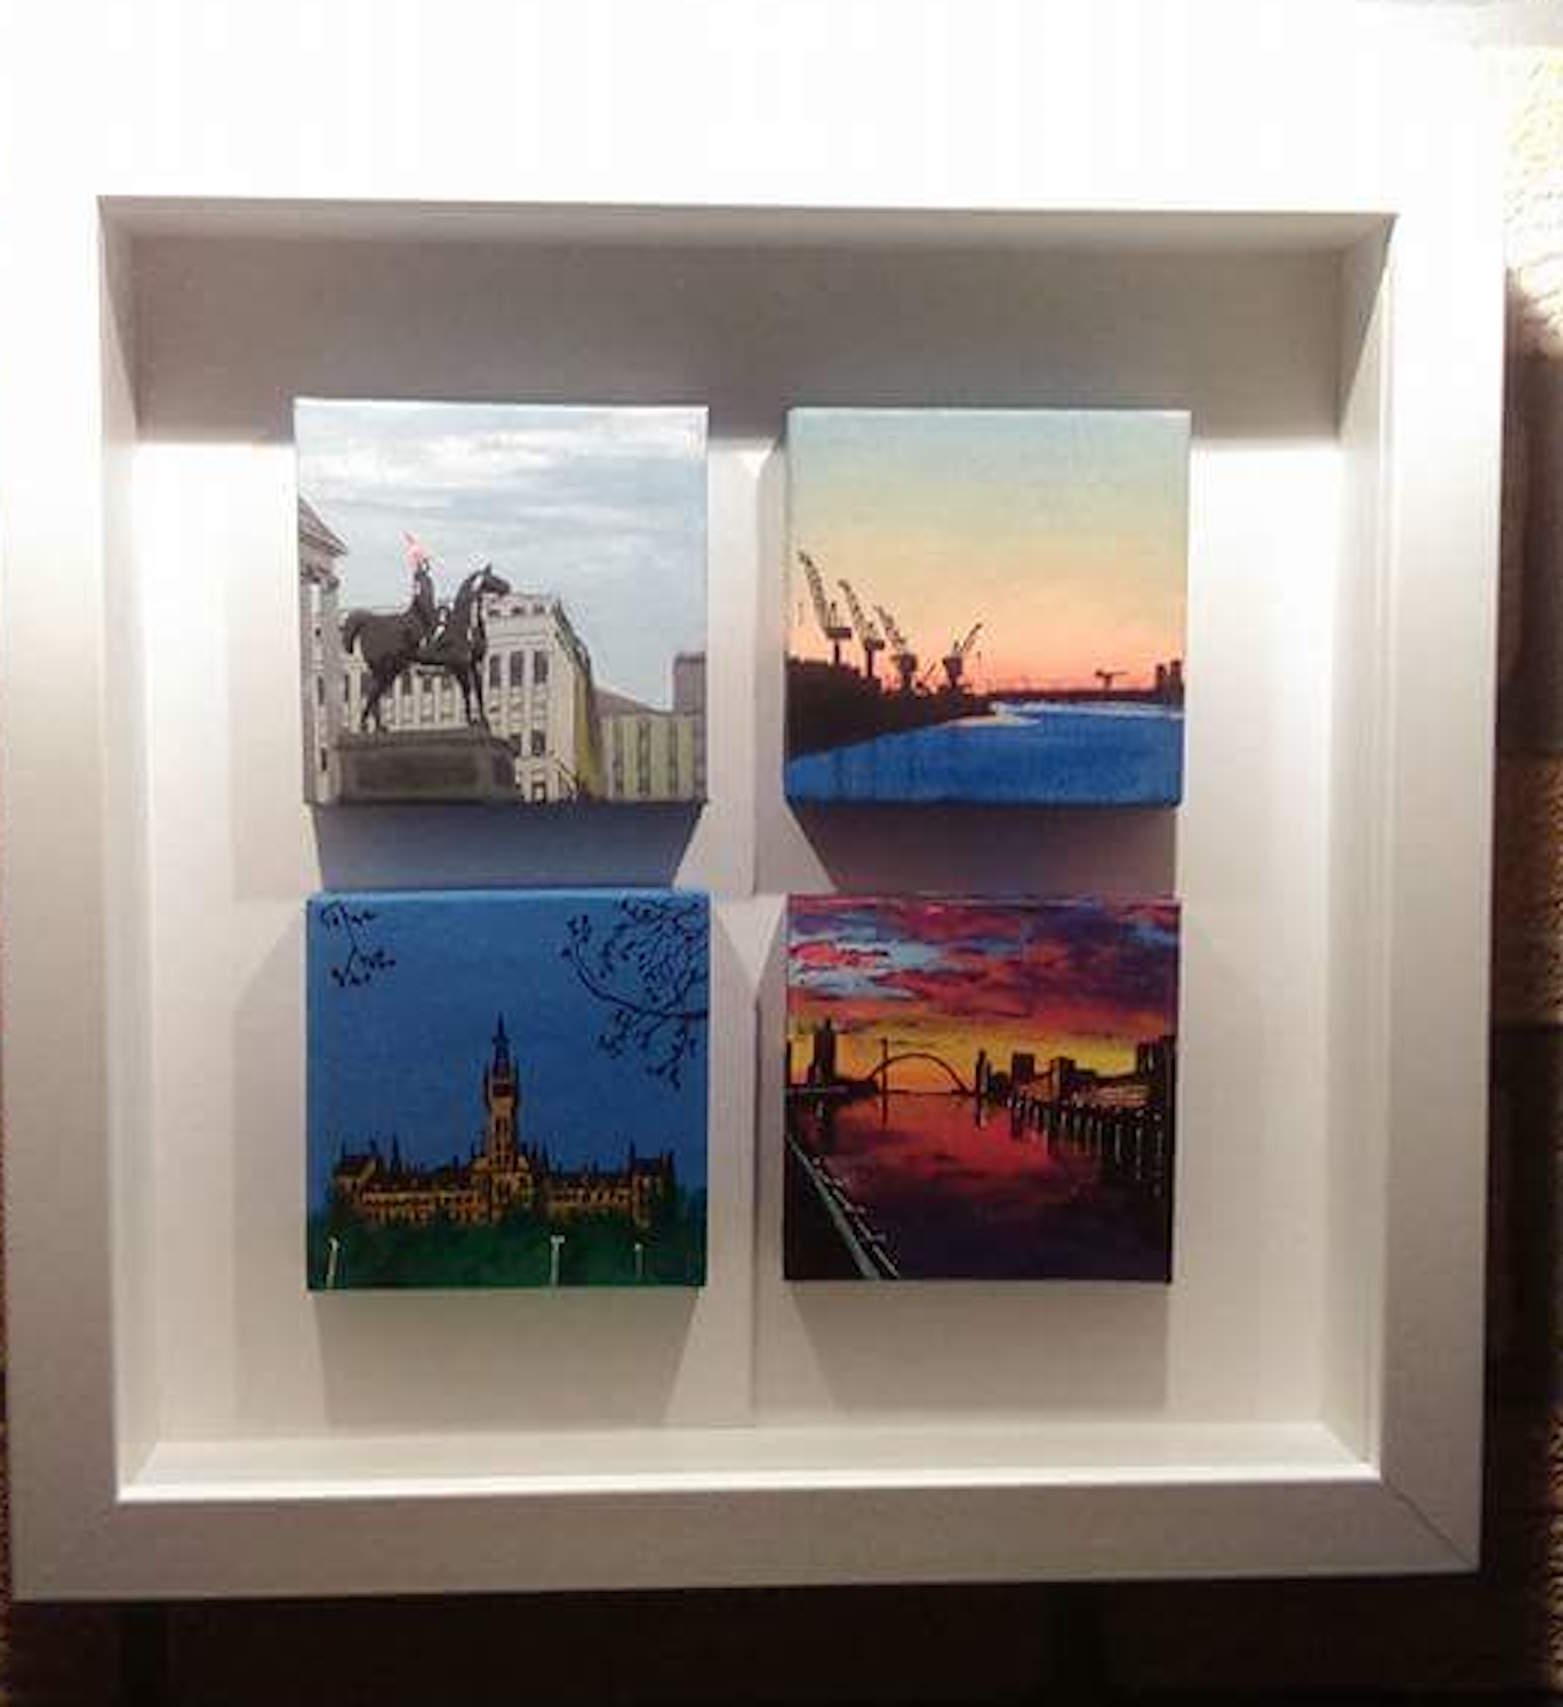 Stephen Scott, self-taught Glasgow artist. Miniature scenes of Glasgow.